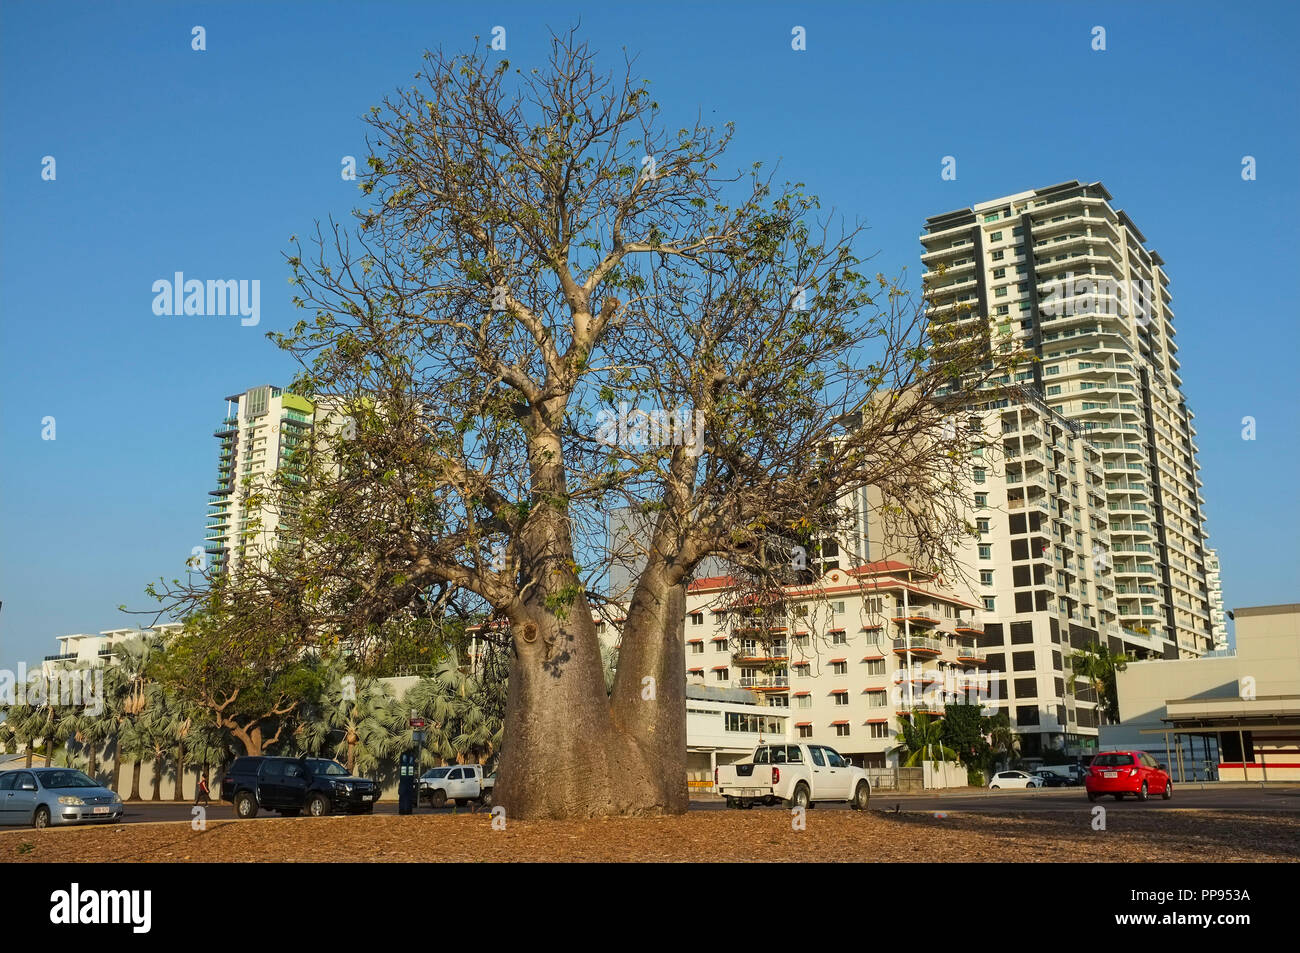 the-boab-tree-in-the-darwin-post-office-car-park-was-planted-in-the-late-1800s-and-mark-the-site-of-darwin-city-first-primary-school-PP953A.jpg